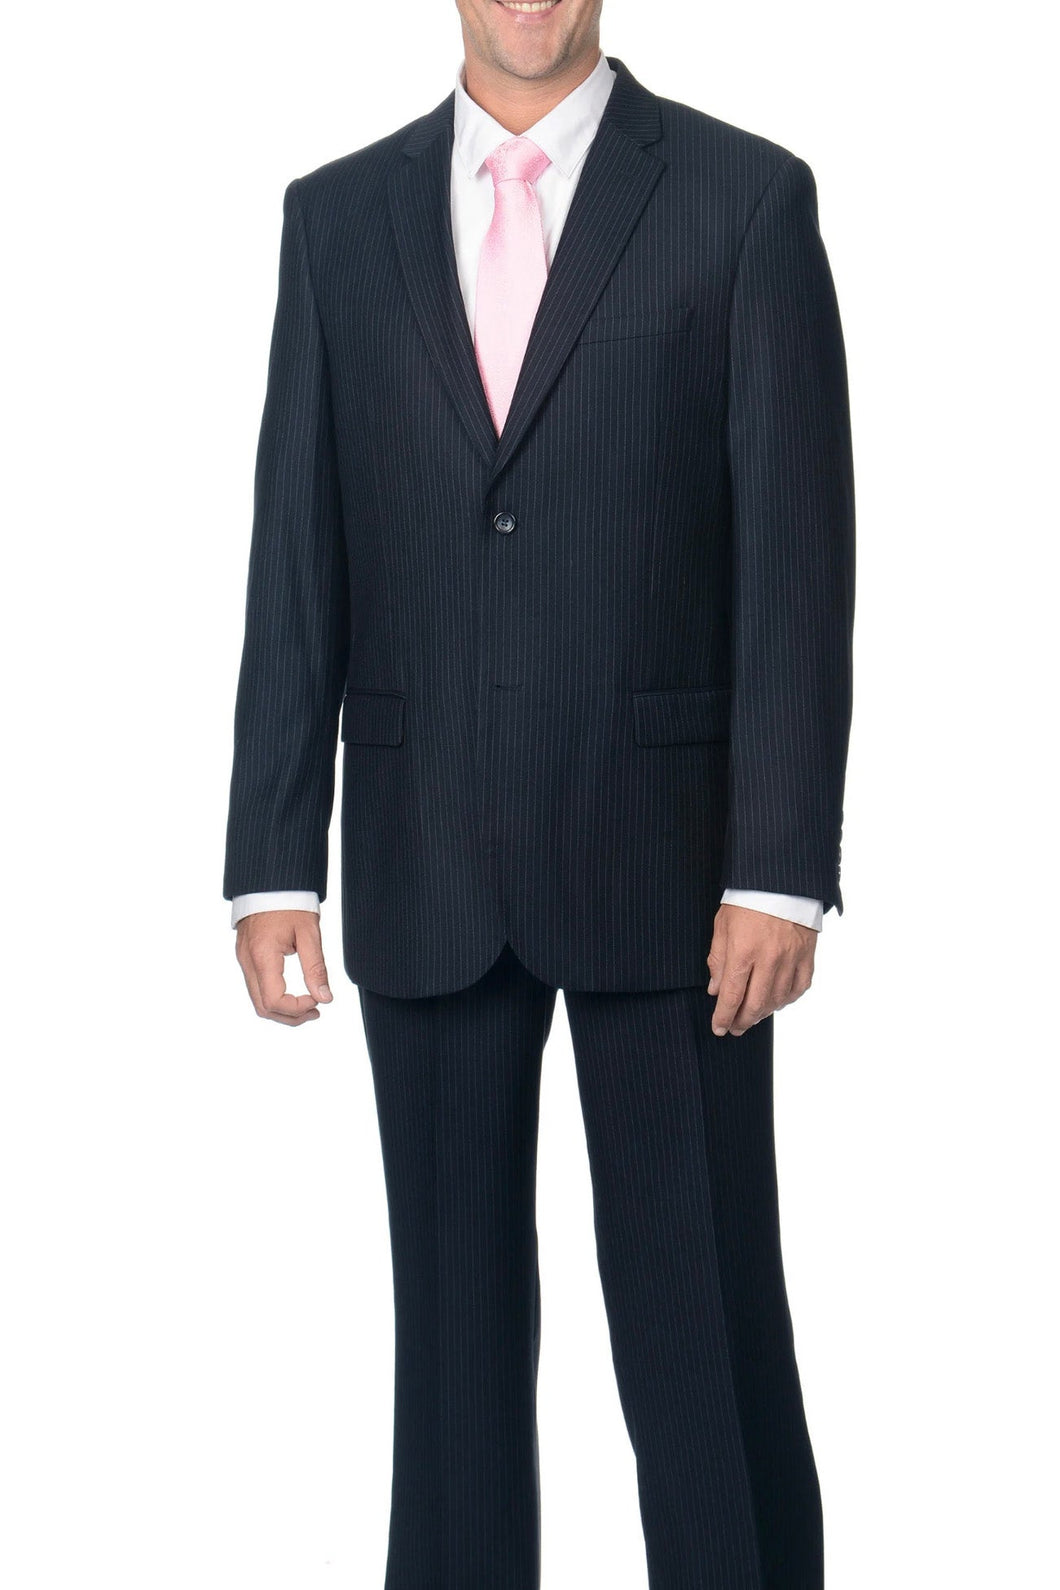 Caravelli Navy Pinstripe Suit